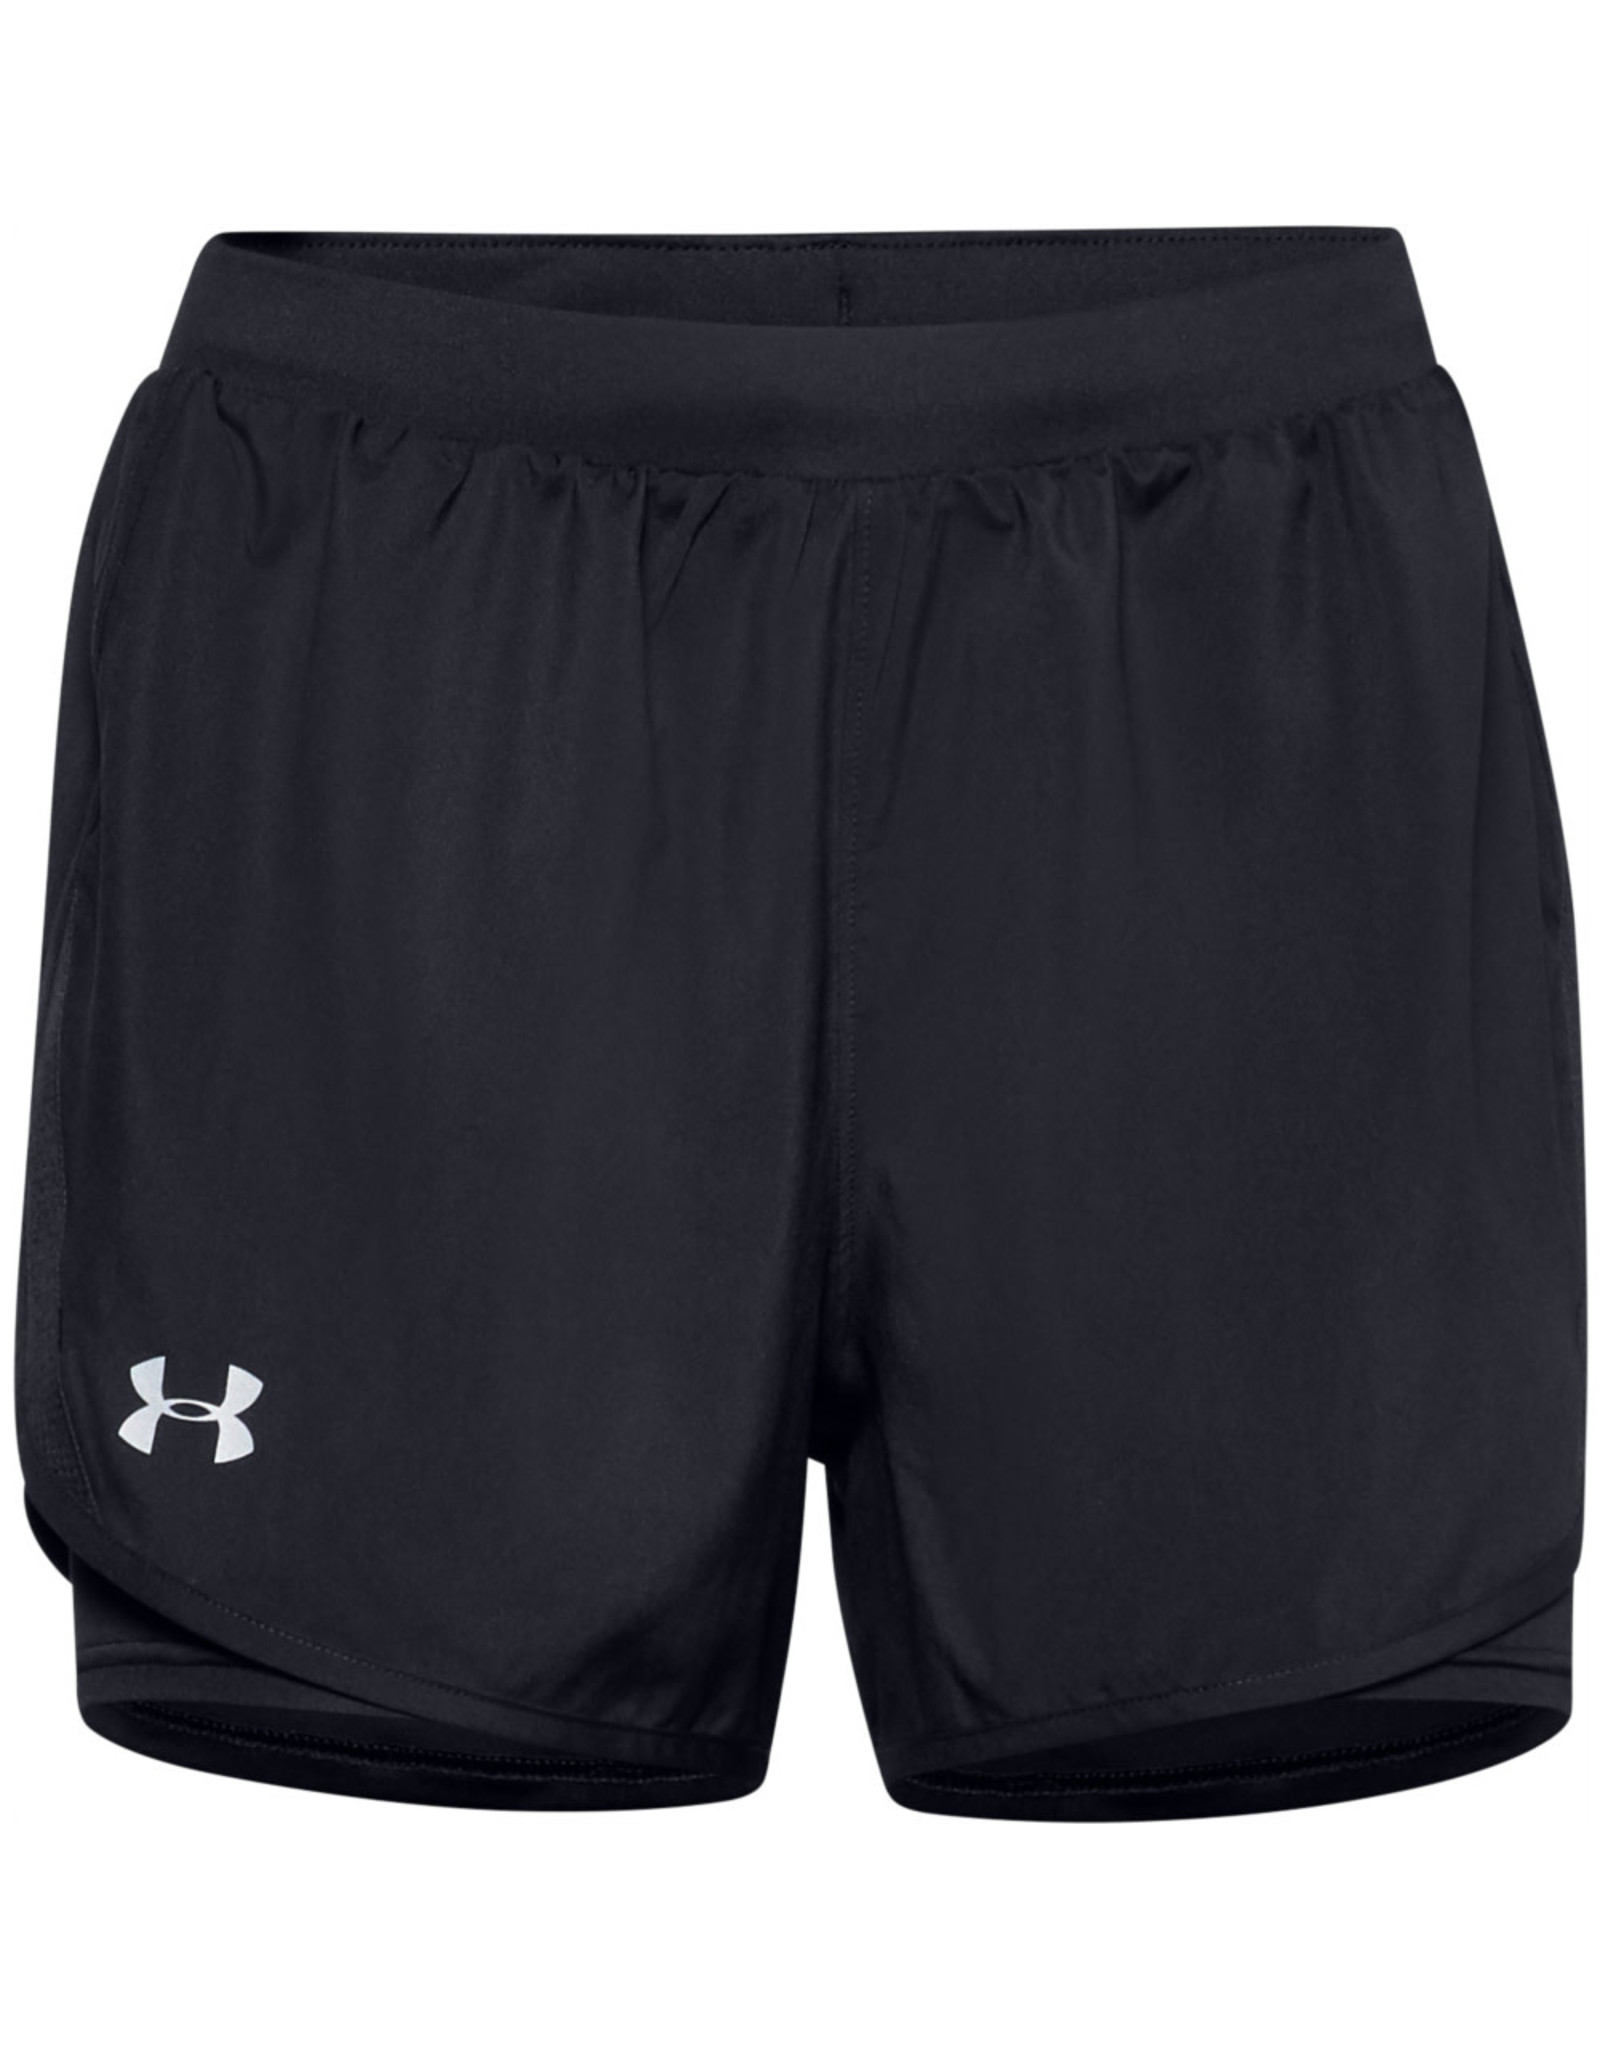 Under Armour UA Fly By 2.0 2N1 Short - Black-Black-Reflective